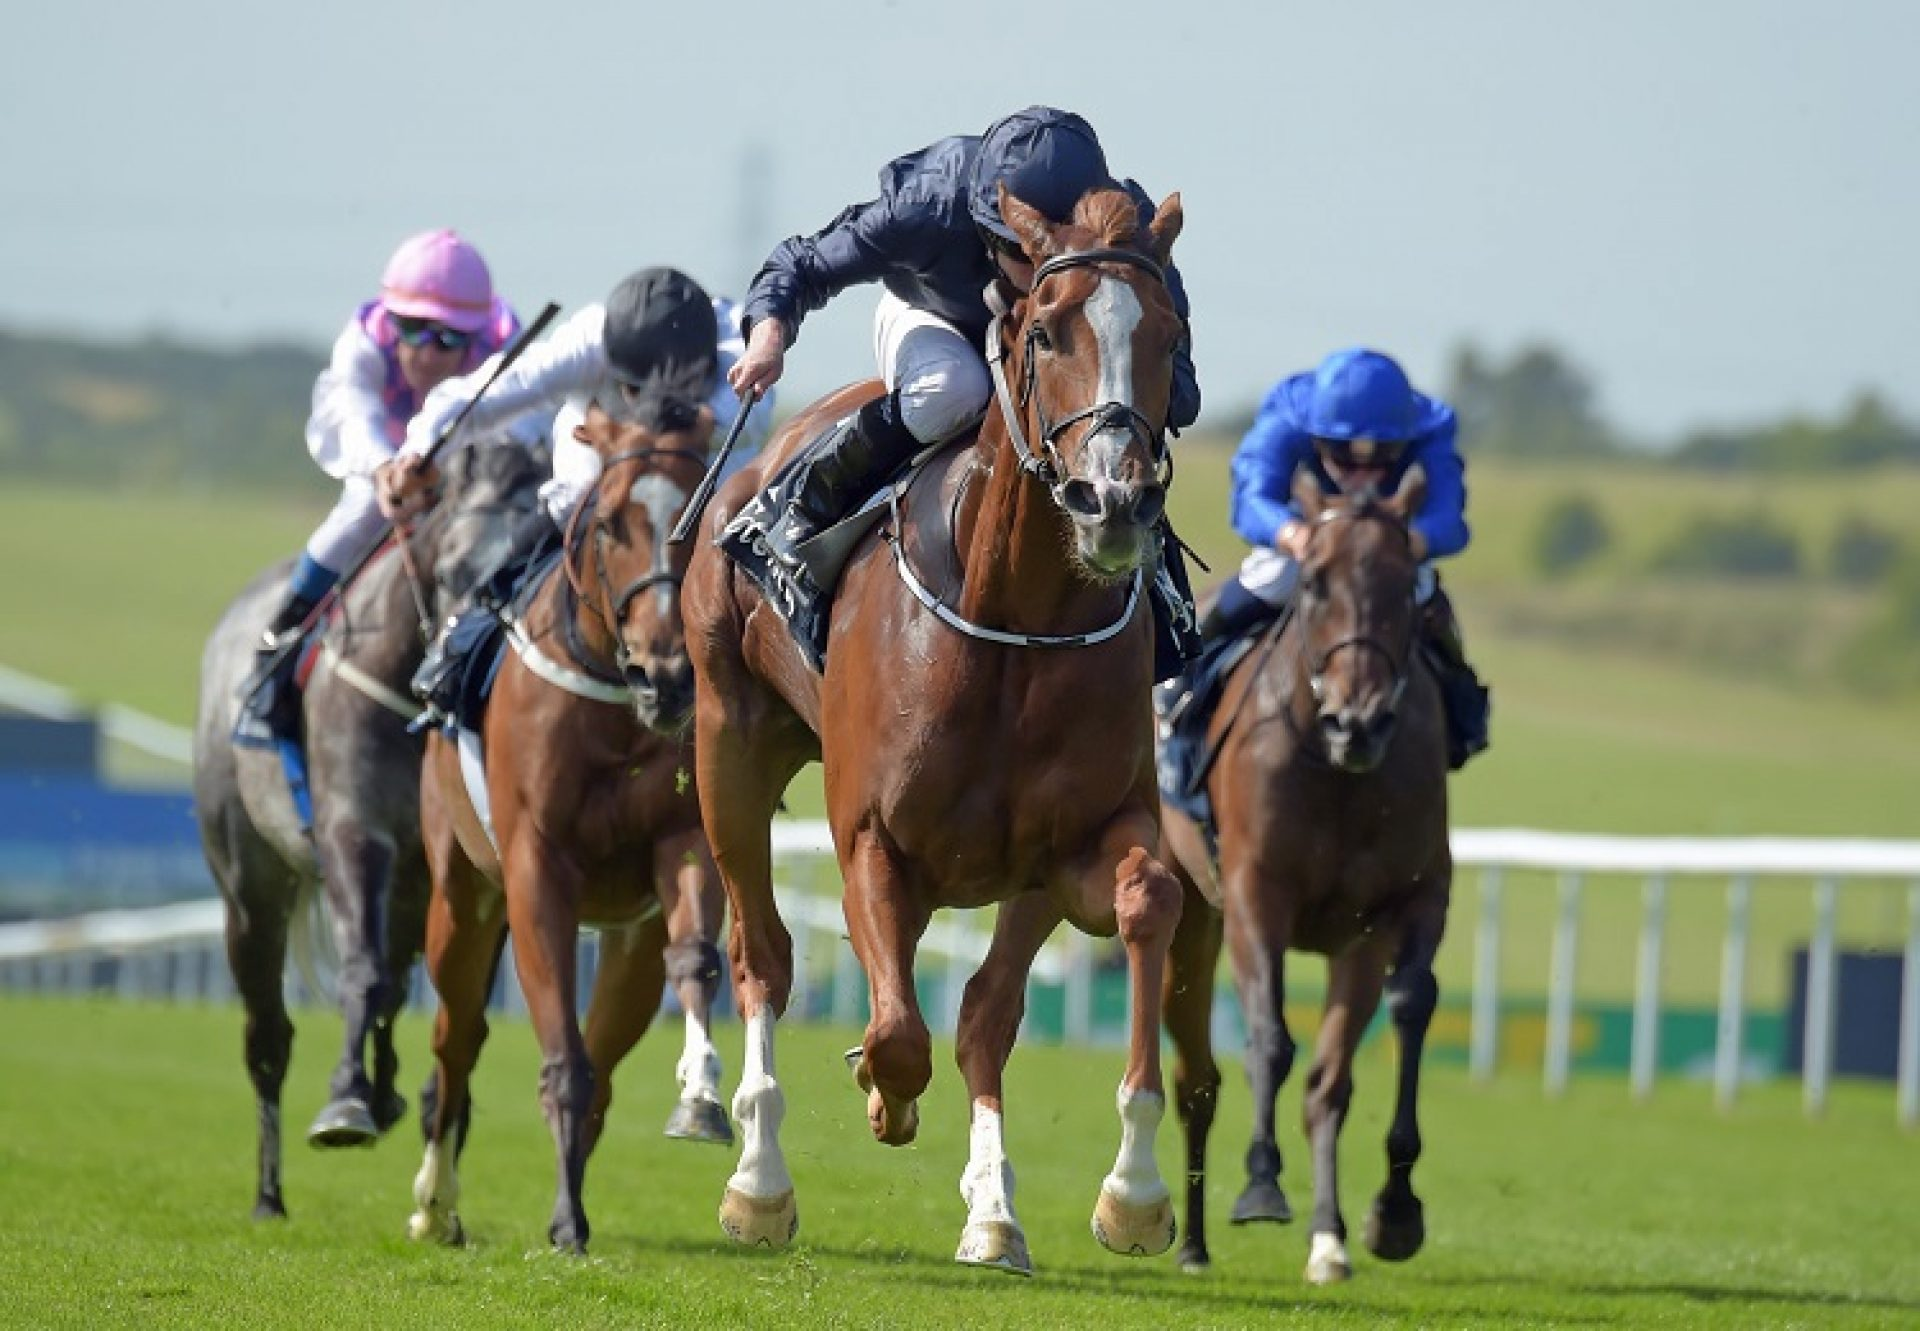 Alice Springs (Galileo) winning the G1 Falmouth Stakes at Newmarket